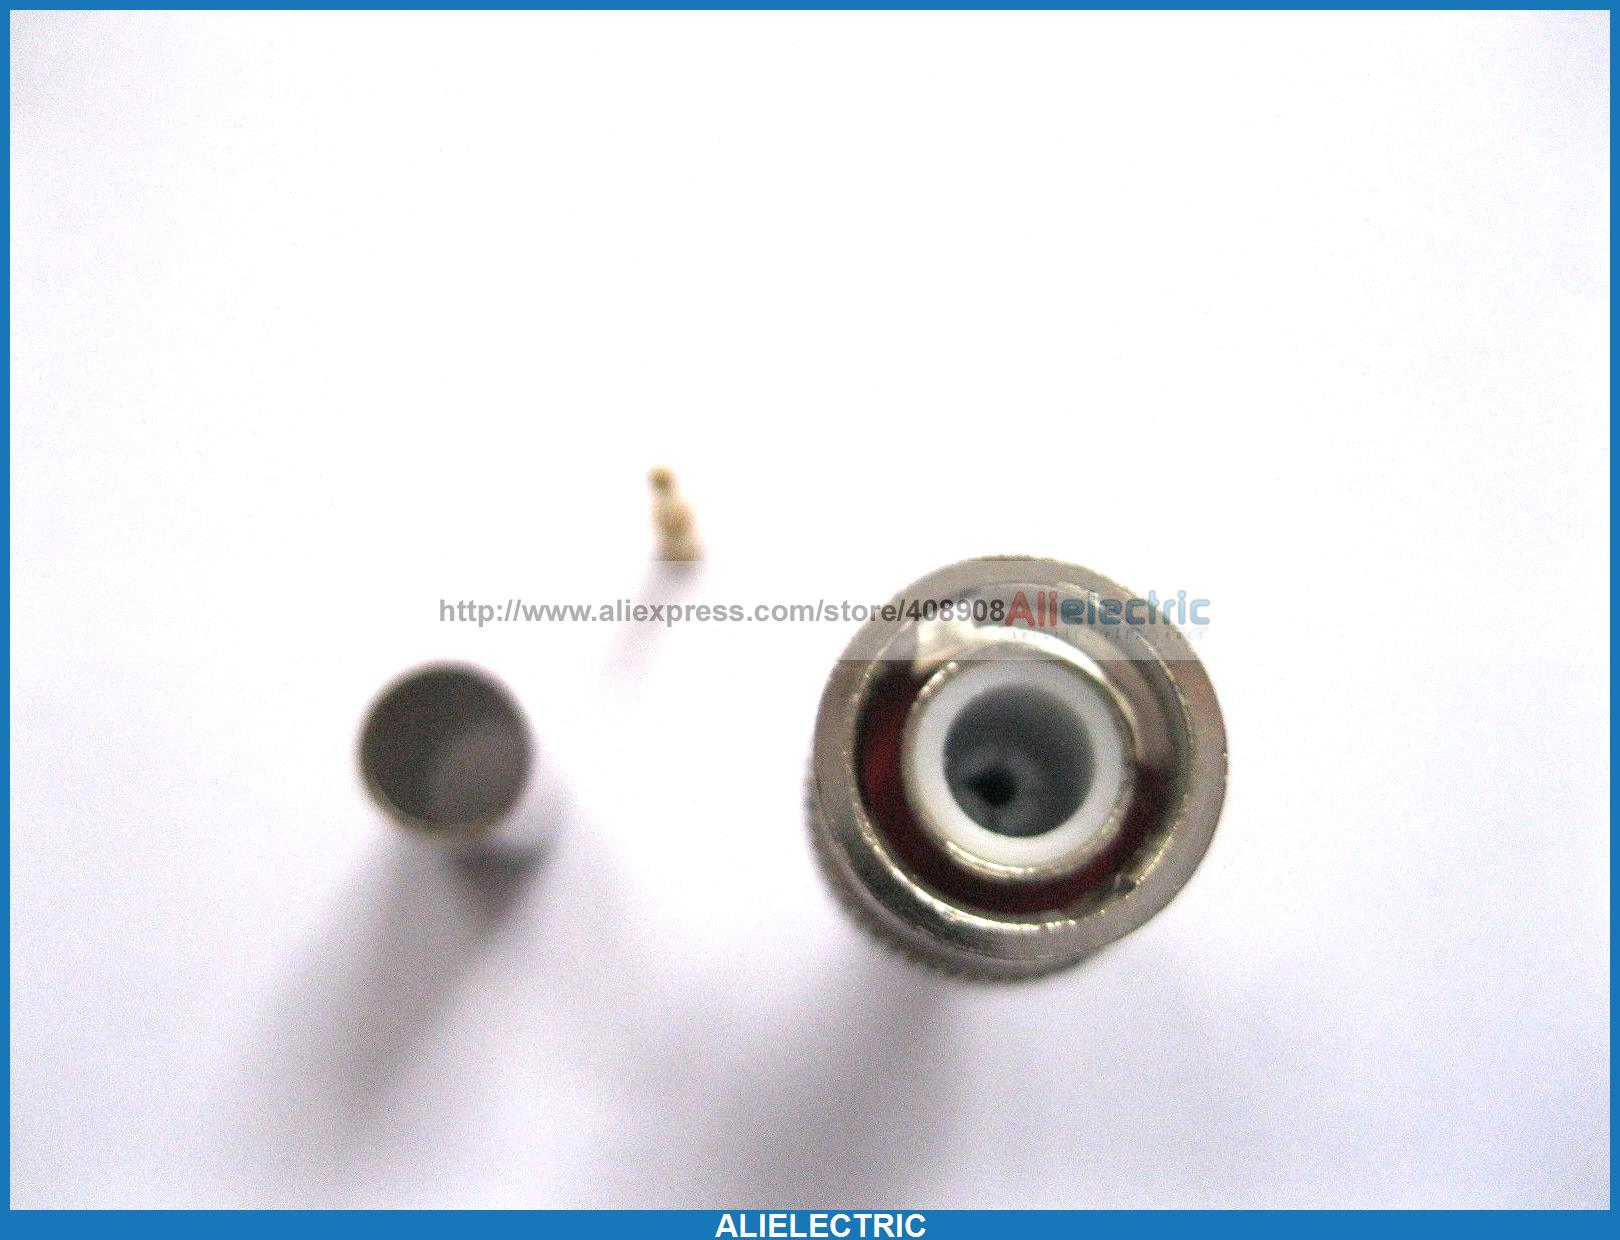 цена на 30 Set BNC Plug Crimp Coaxial Connector 3 Piece for RG59